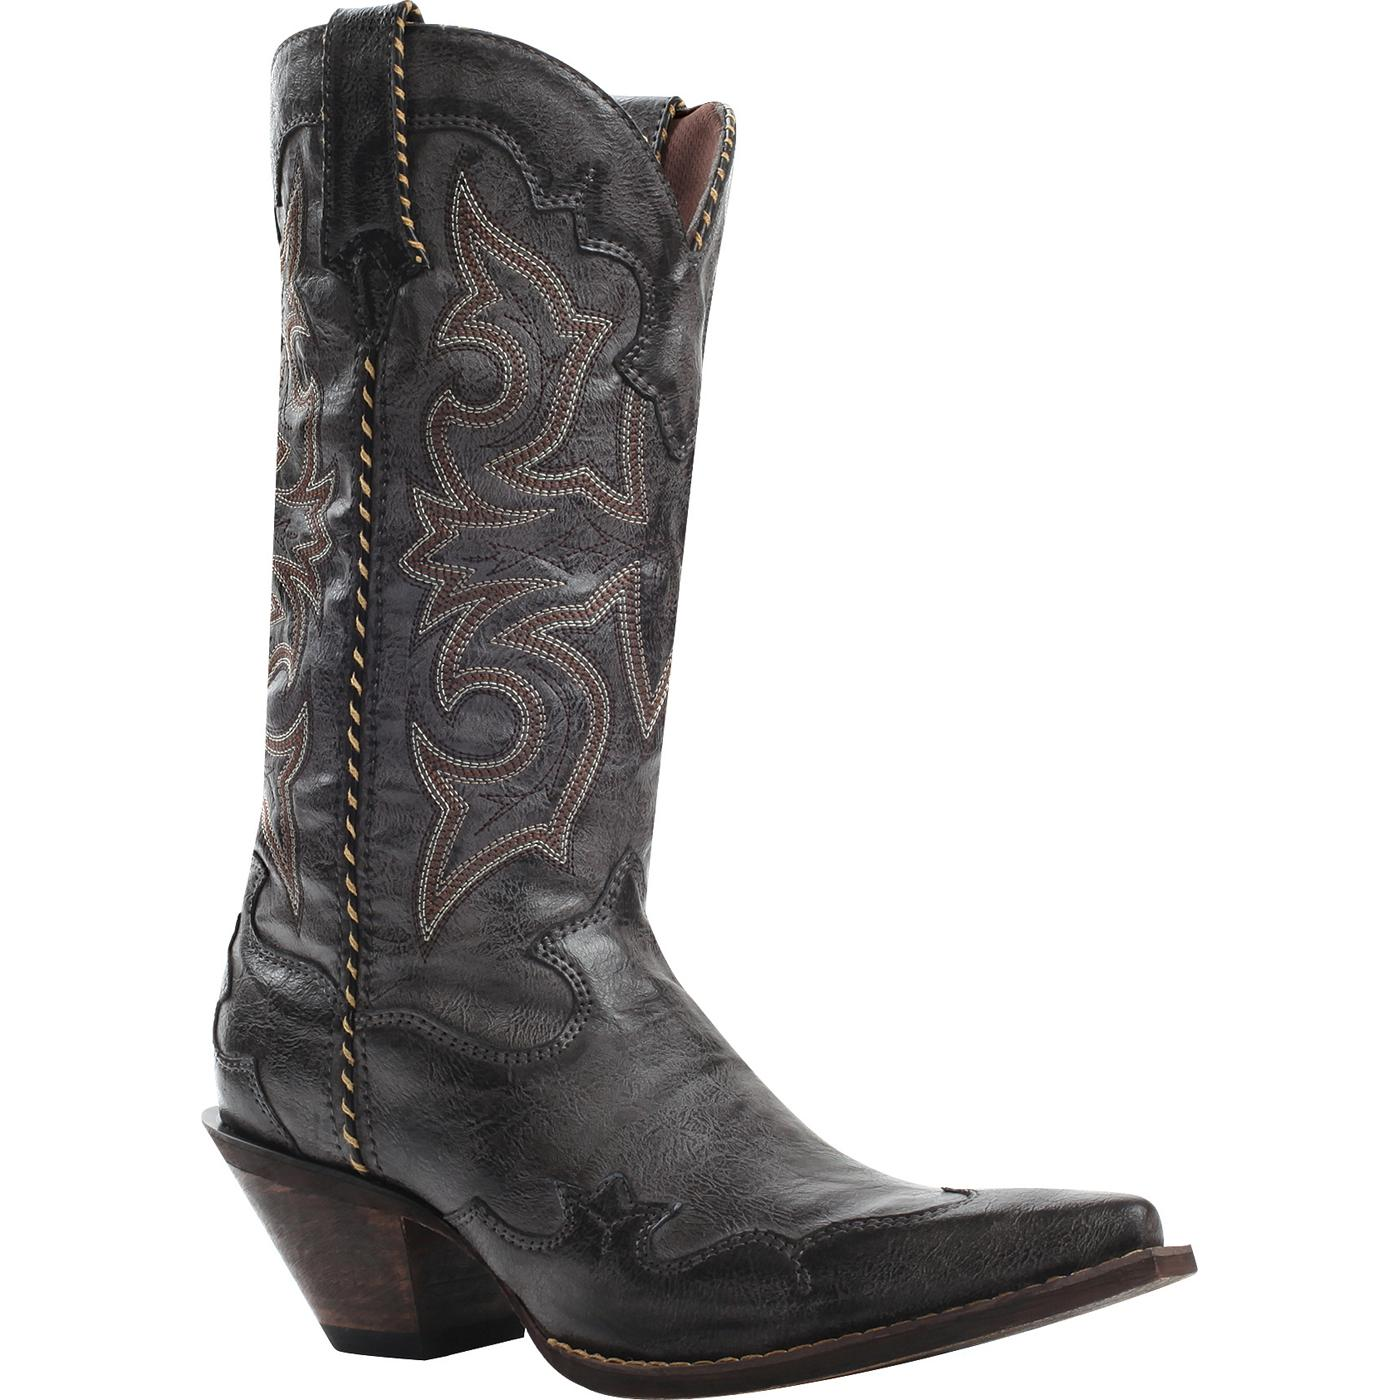 Fantastic Durango Boot Rebel FFA Certified Pullon Western Boots Are Greatlooking Boots That Benefit A Great Organization! Heres To The Future Farmers Of America! To Show Their Support For The Next Generation Of Farmers, Durango Boot Is